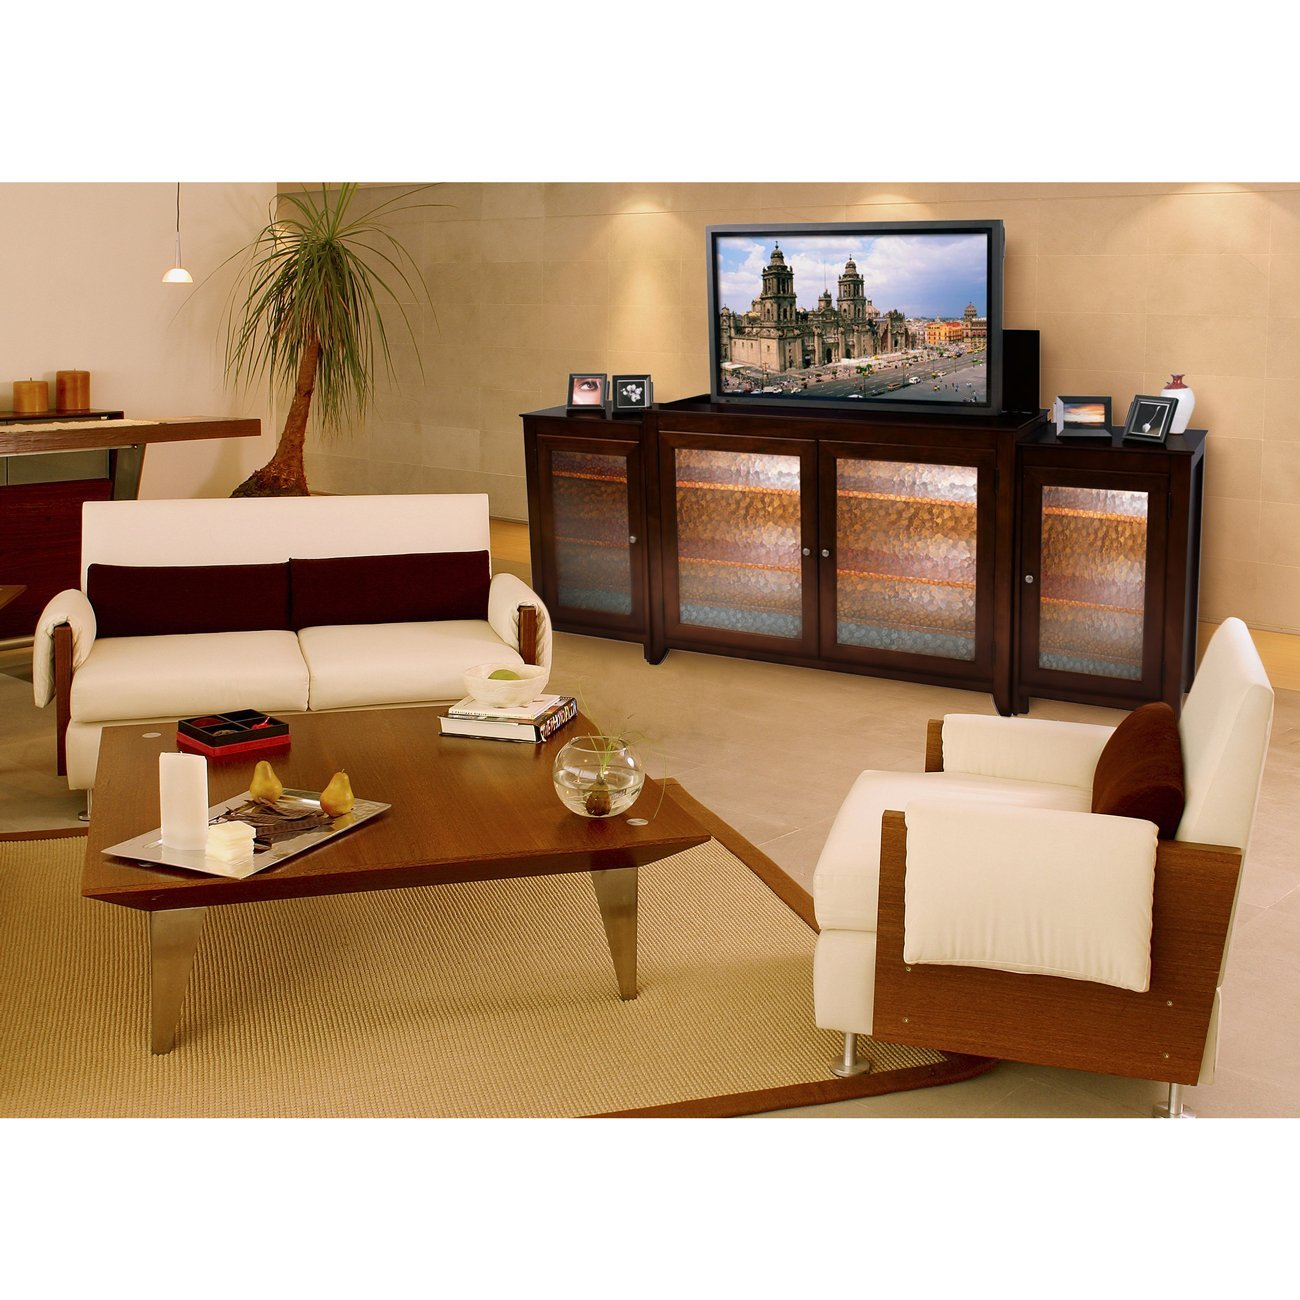 Pop up tv cabinet guide for cheap pop up tv cabinet online for Tv lift consoles for flat screens